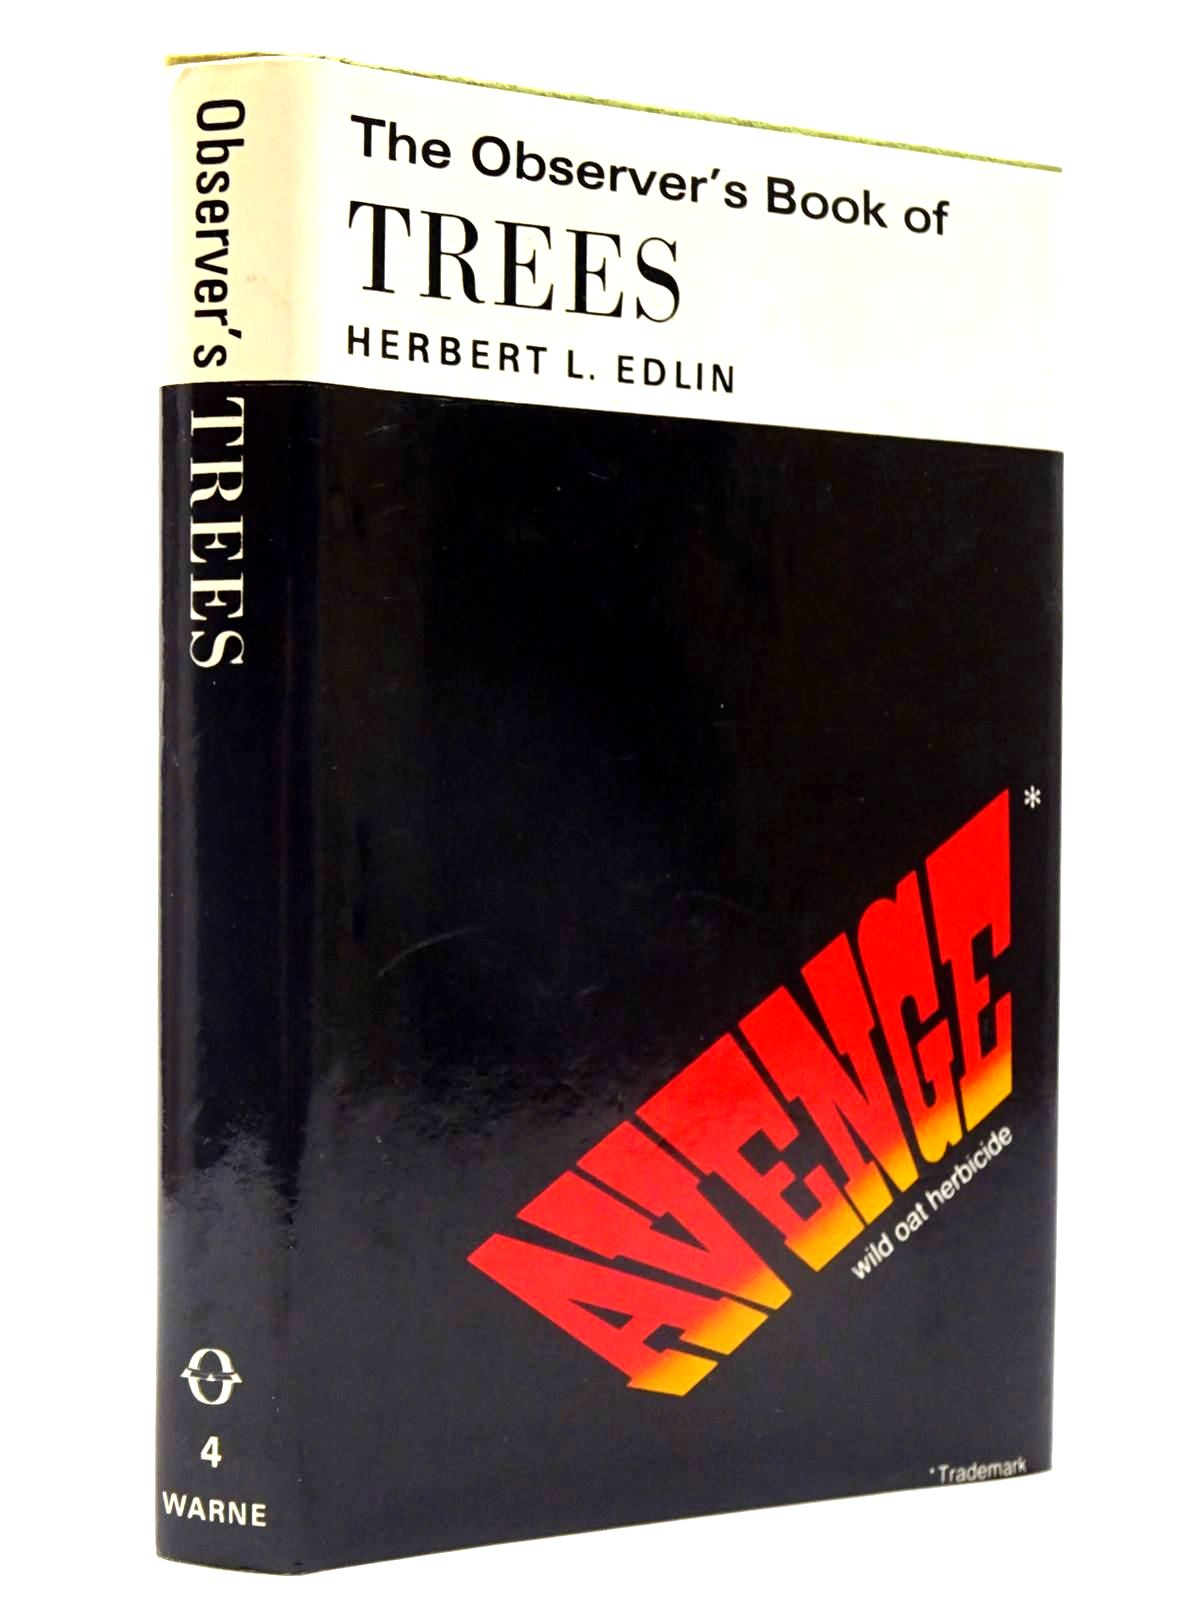 Photo of THE OBSERVER'S BOOK OF TREES (CYANAMID WRAPPER) written by Edlin, Herbert L. published by Frederick Warne & Co Ltd. (STOCK CODE: 2130412)  for sale by Stella & Rose's Books